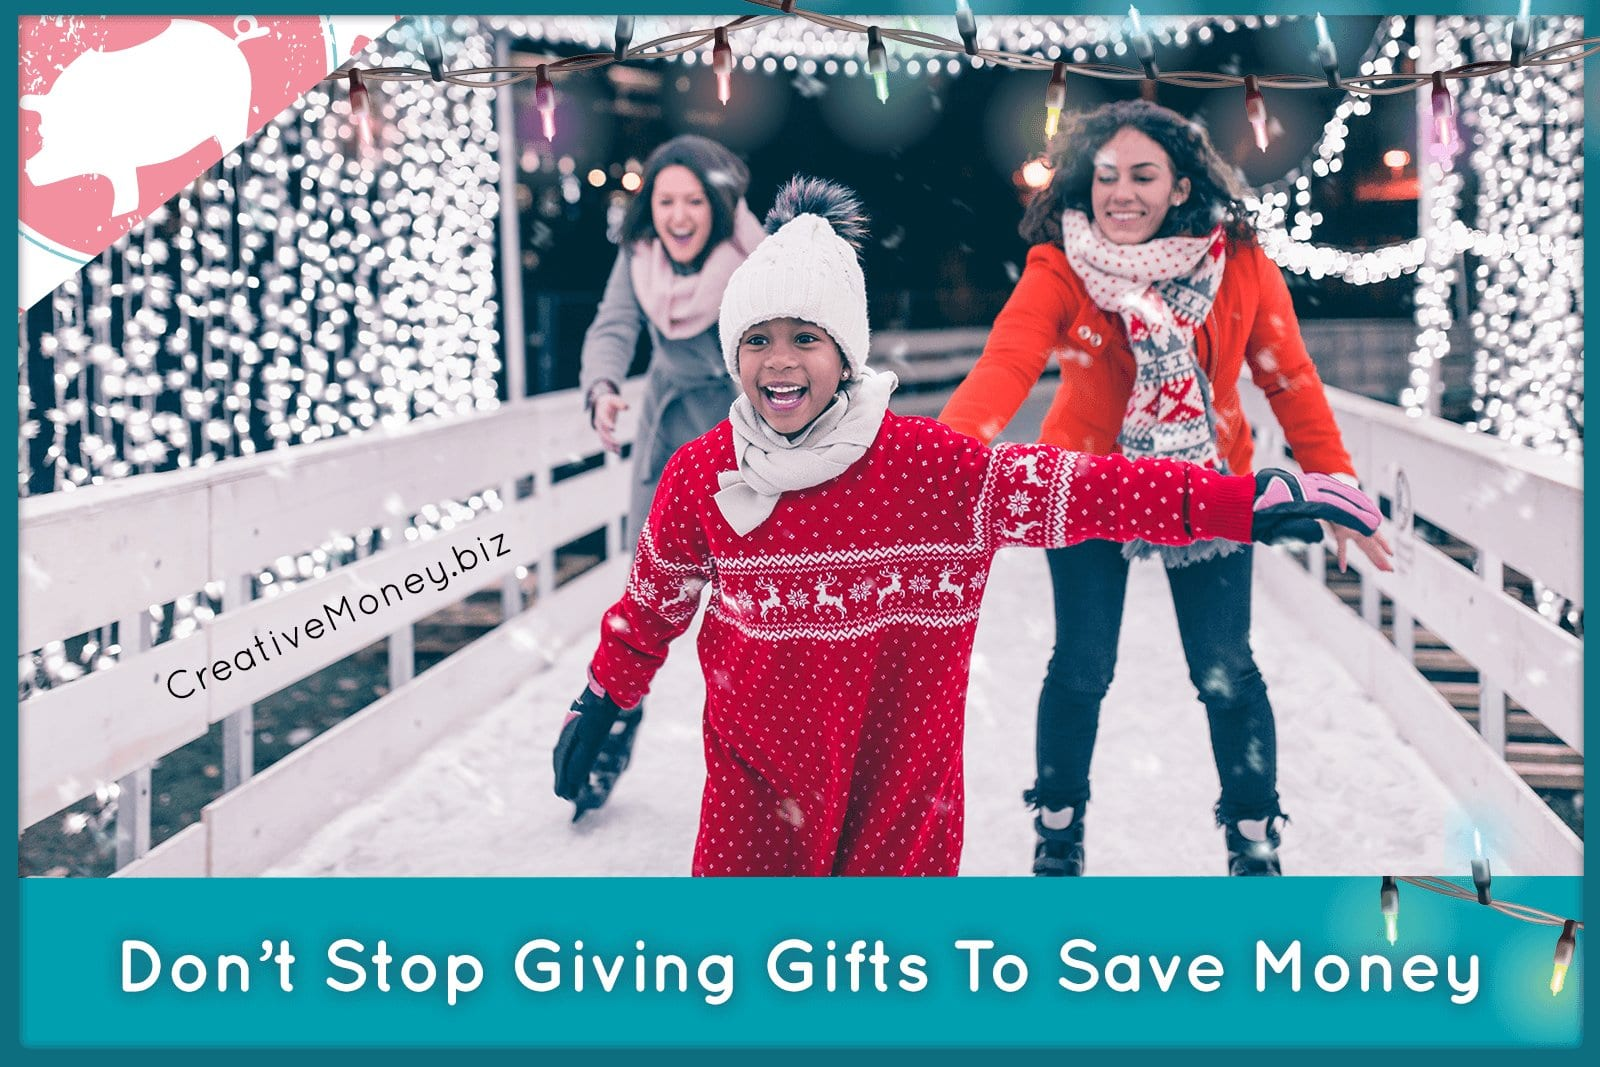 Don't Stop Giving Gifts to Save Money